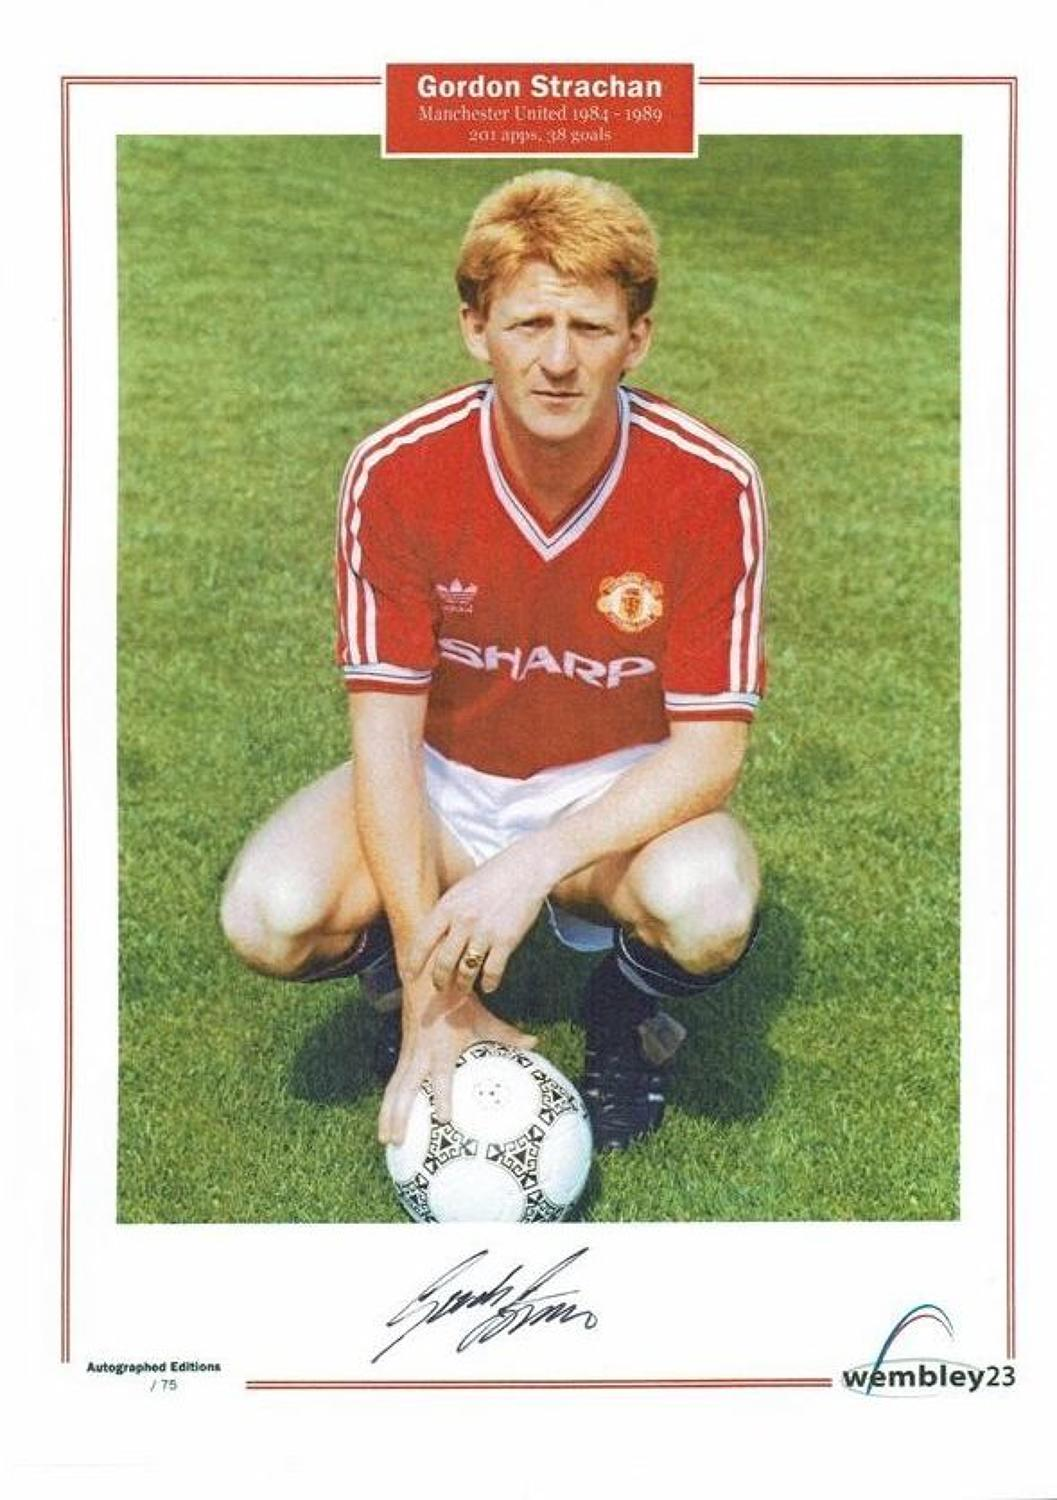 Gordon Strachan, Manchester United